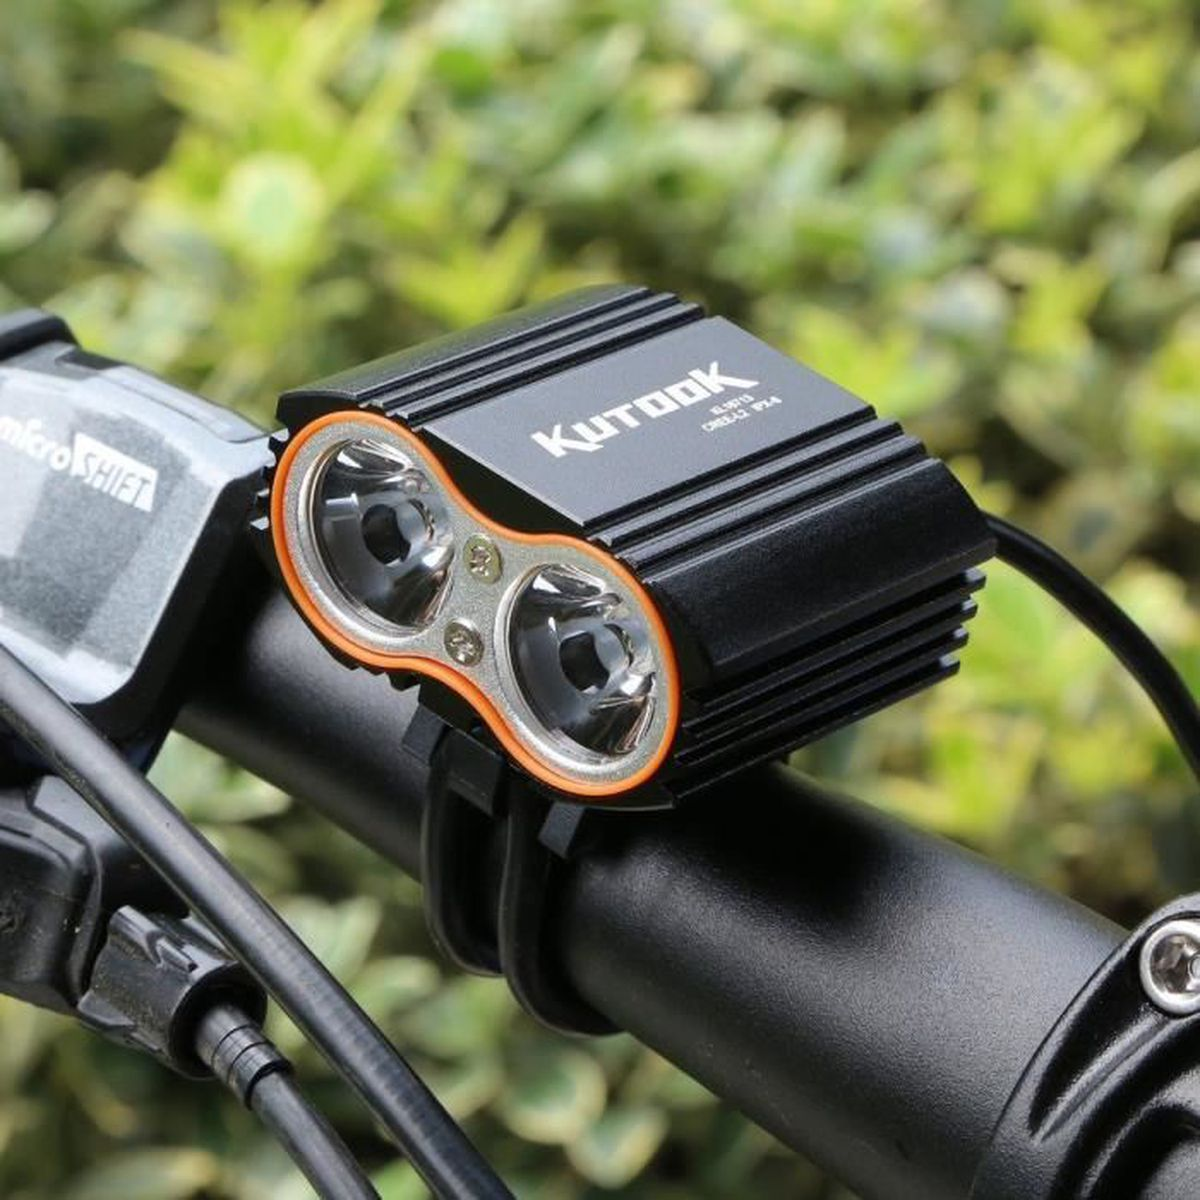 Kutook Vtt Led Ultra Eclairage Imperméable Vélo Avant Frontal Lampe DW9EH2I